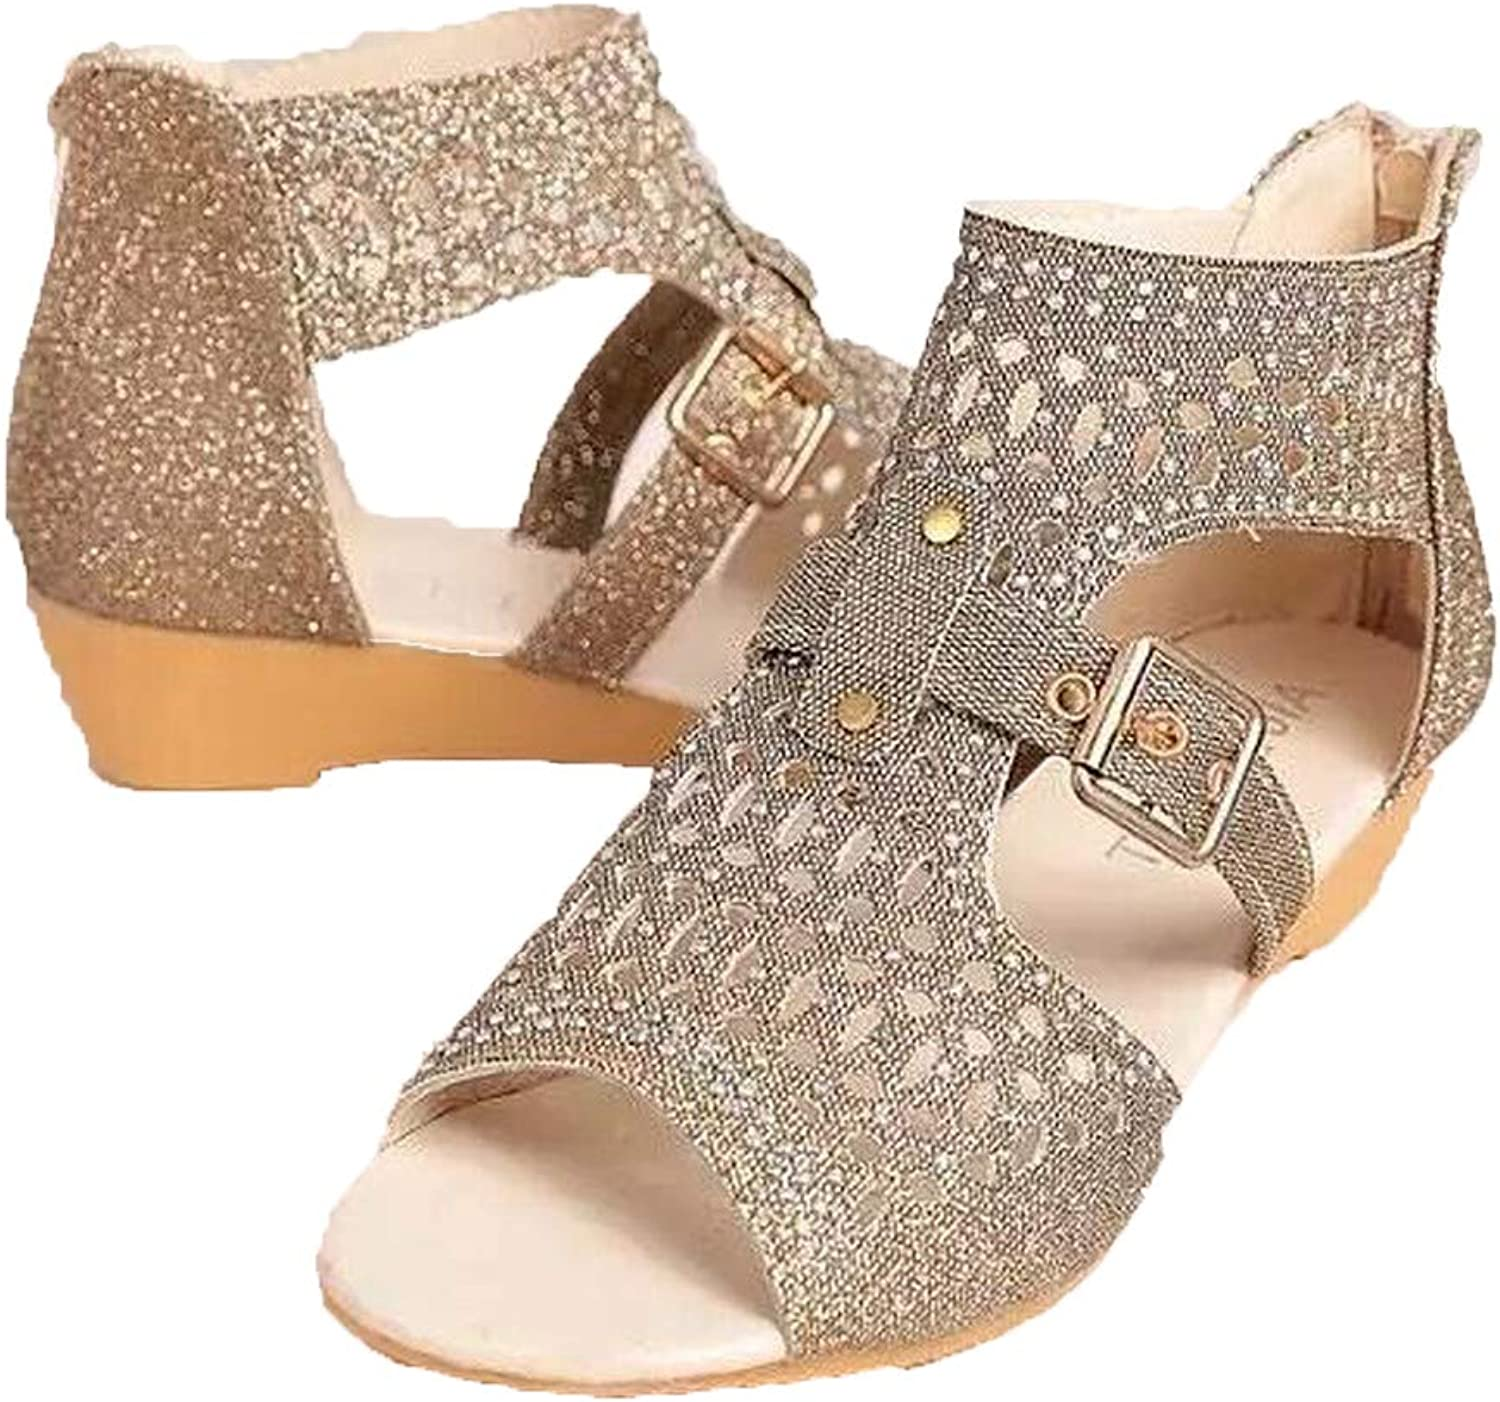 WTKRSM Women's Open-Toed Diamond Sandals with Sloping Heels and Summer Style Personality Sandals